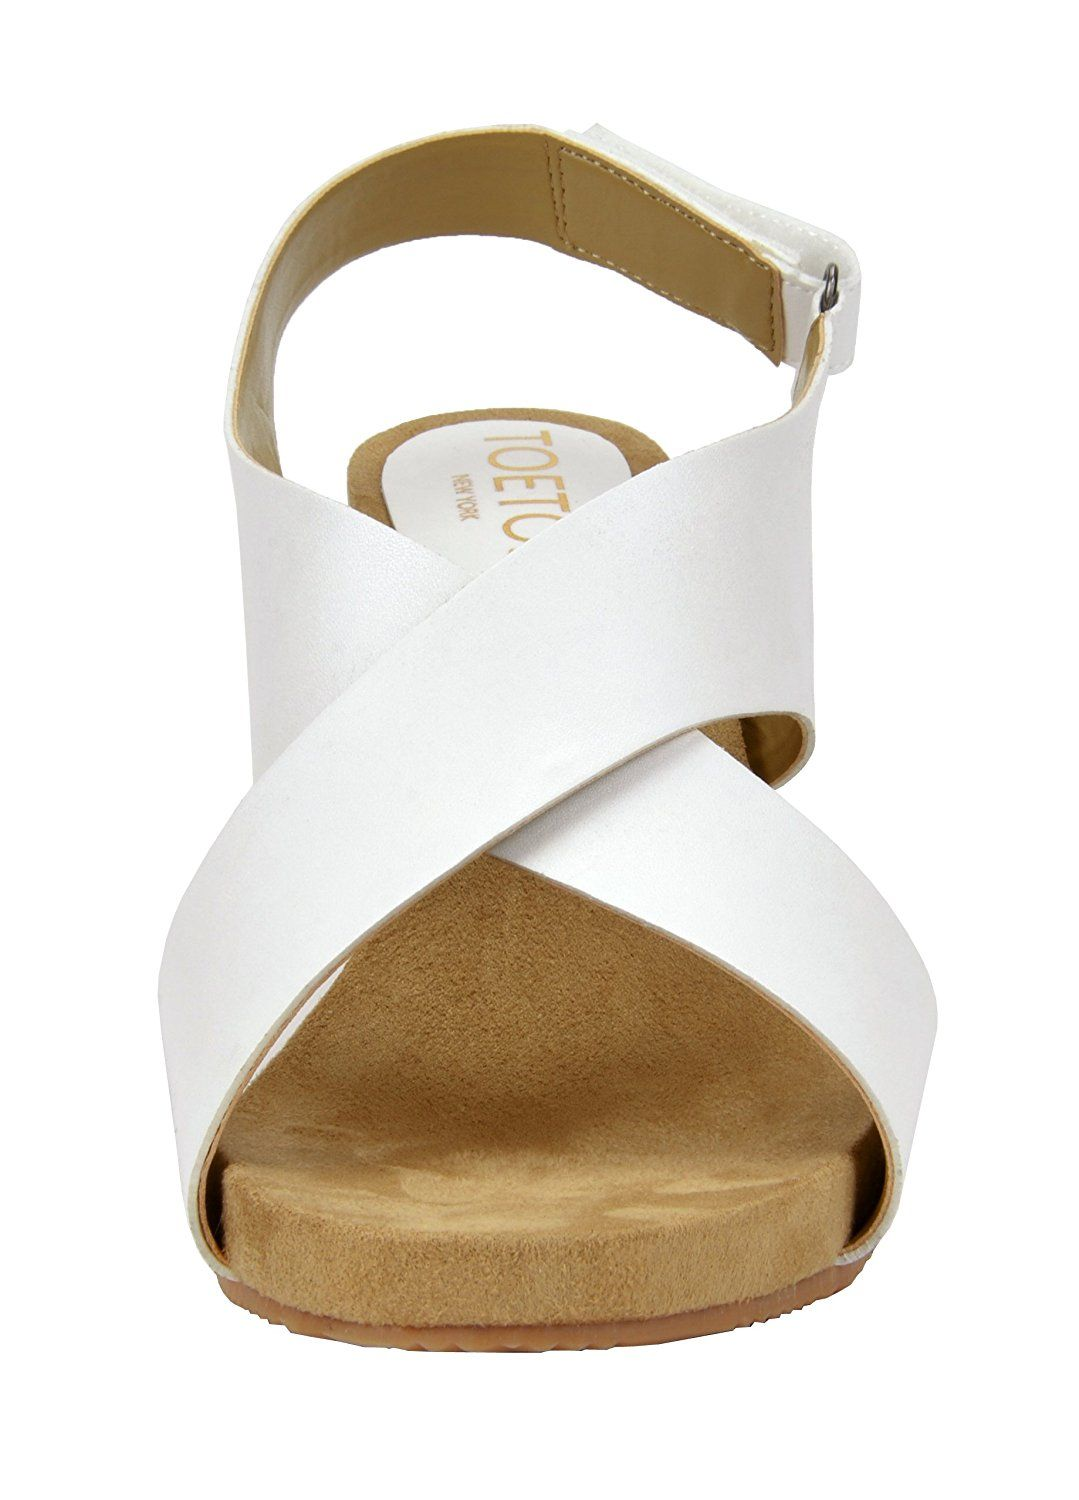 9f368e1e373e TOETOS SOLSOFT New Women s Casual Open Toes Mid Heels Platform Wedges  Summer Sandals   More info could be found at the image url.